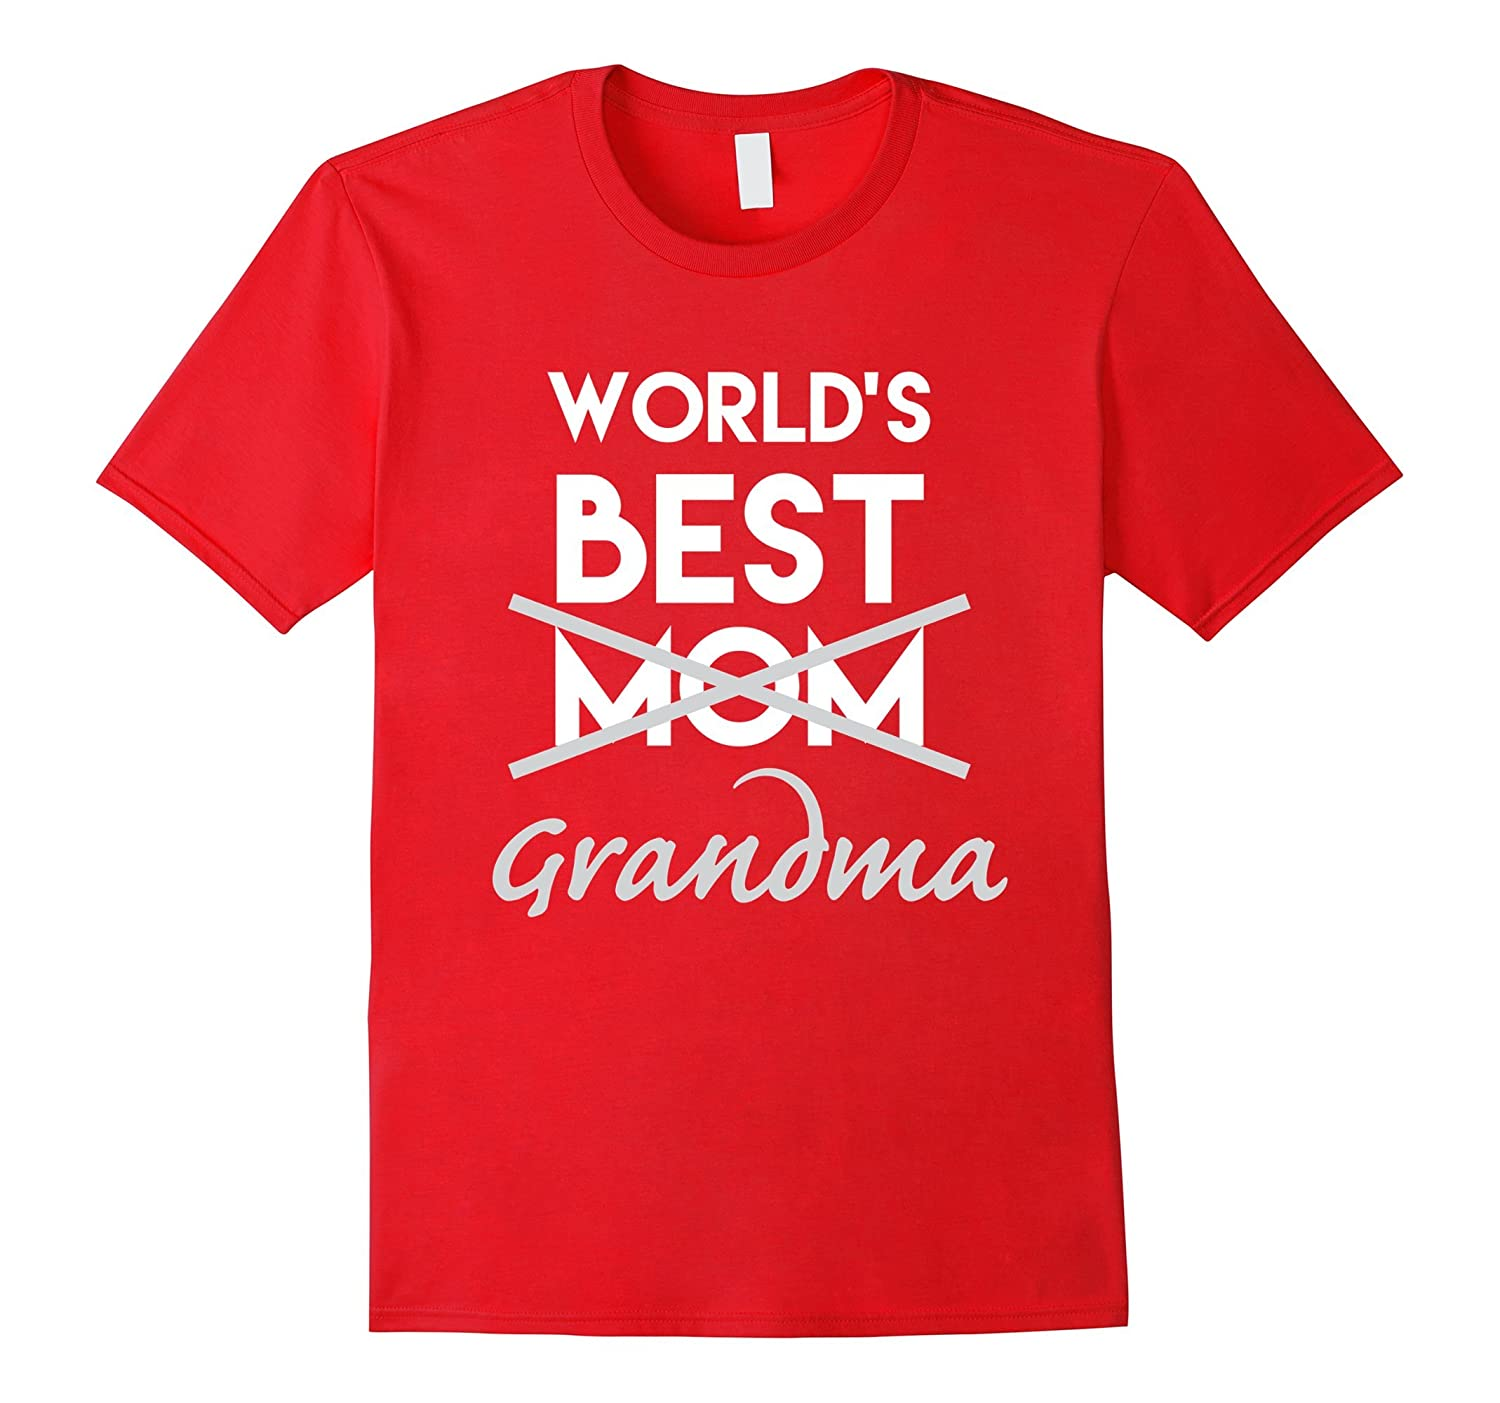 World's Best Mom Grandma Shirt, Funny Pregnancy Announcement-CL